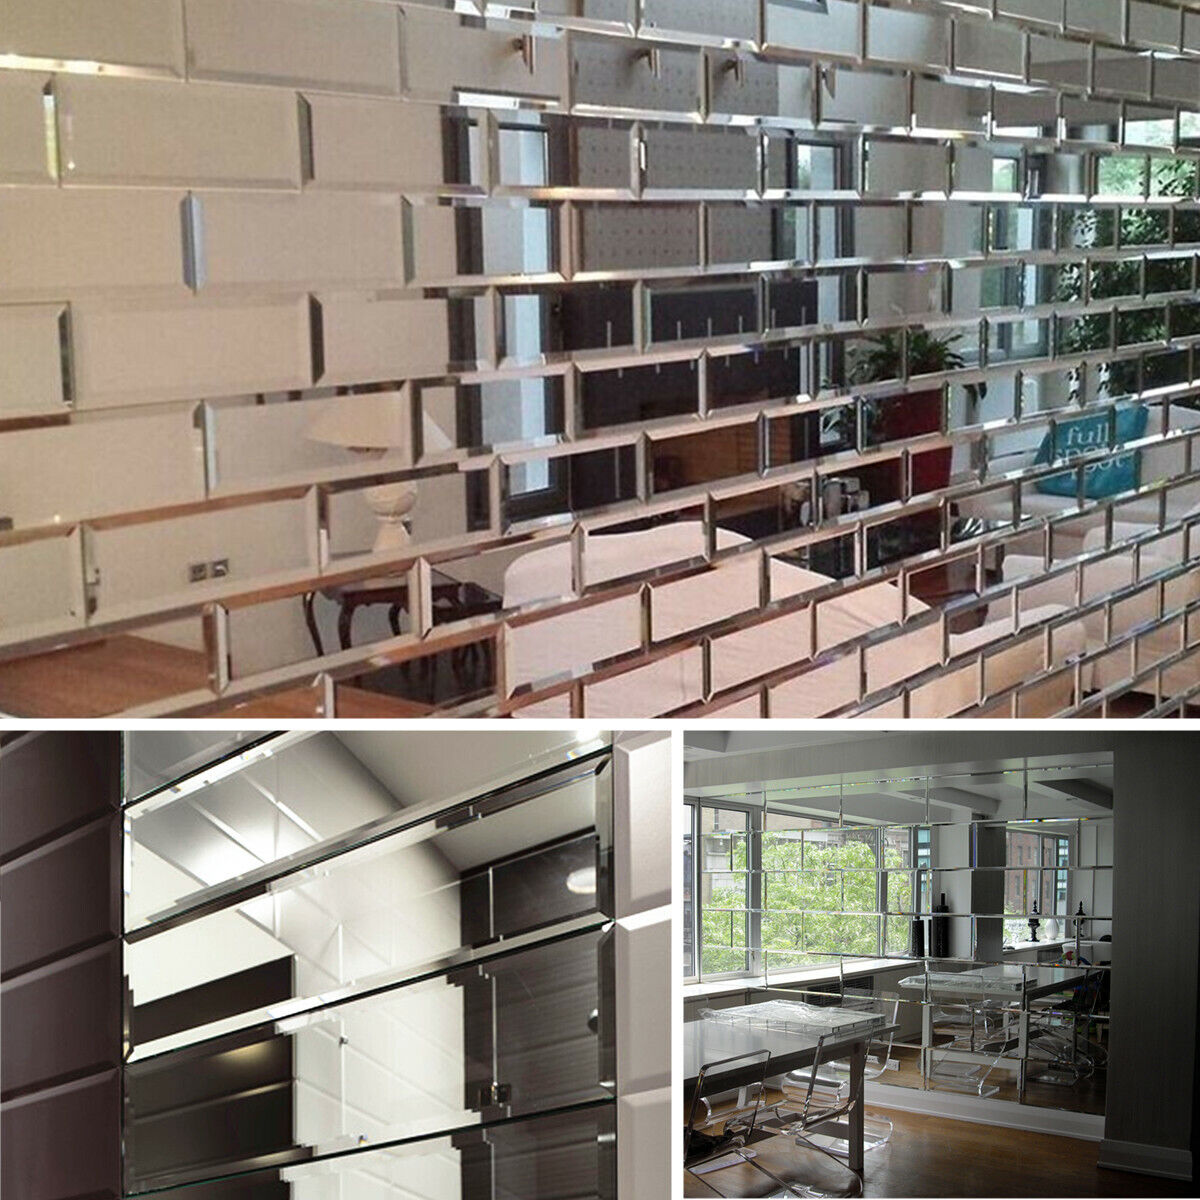 Bevelled Kitchen Wall Tiles: 22/44/66/88X Clear Bevelled Silver Mirror Wall Tiles